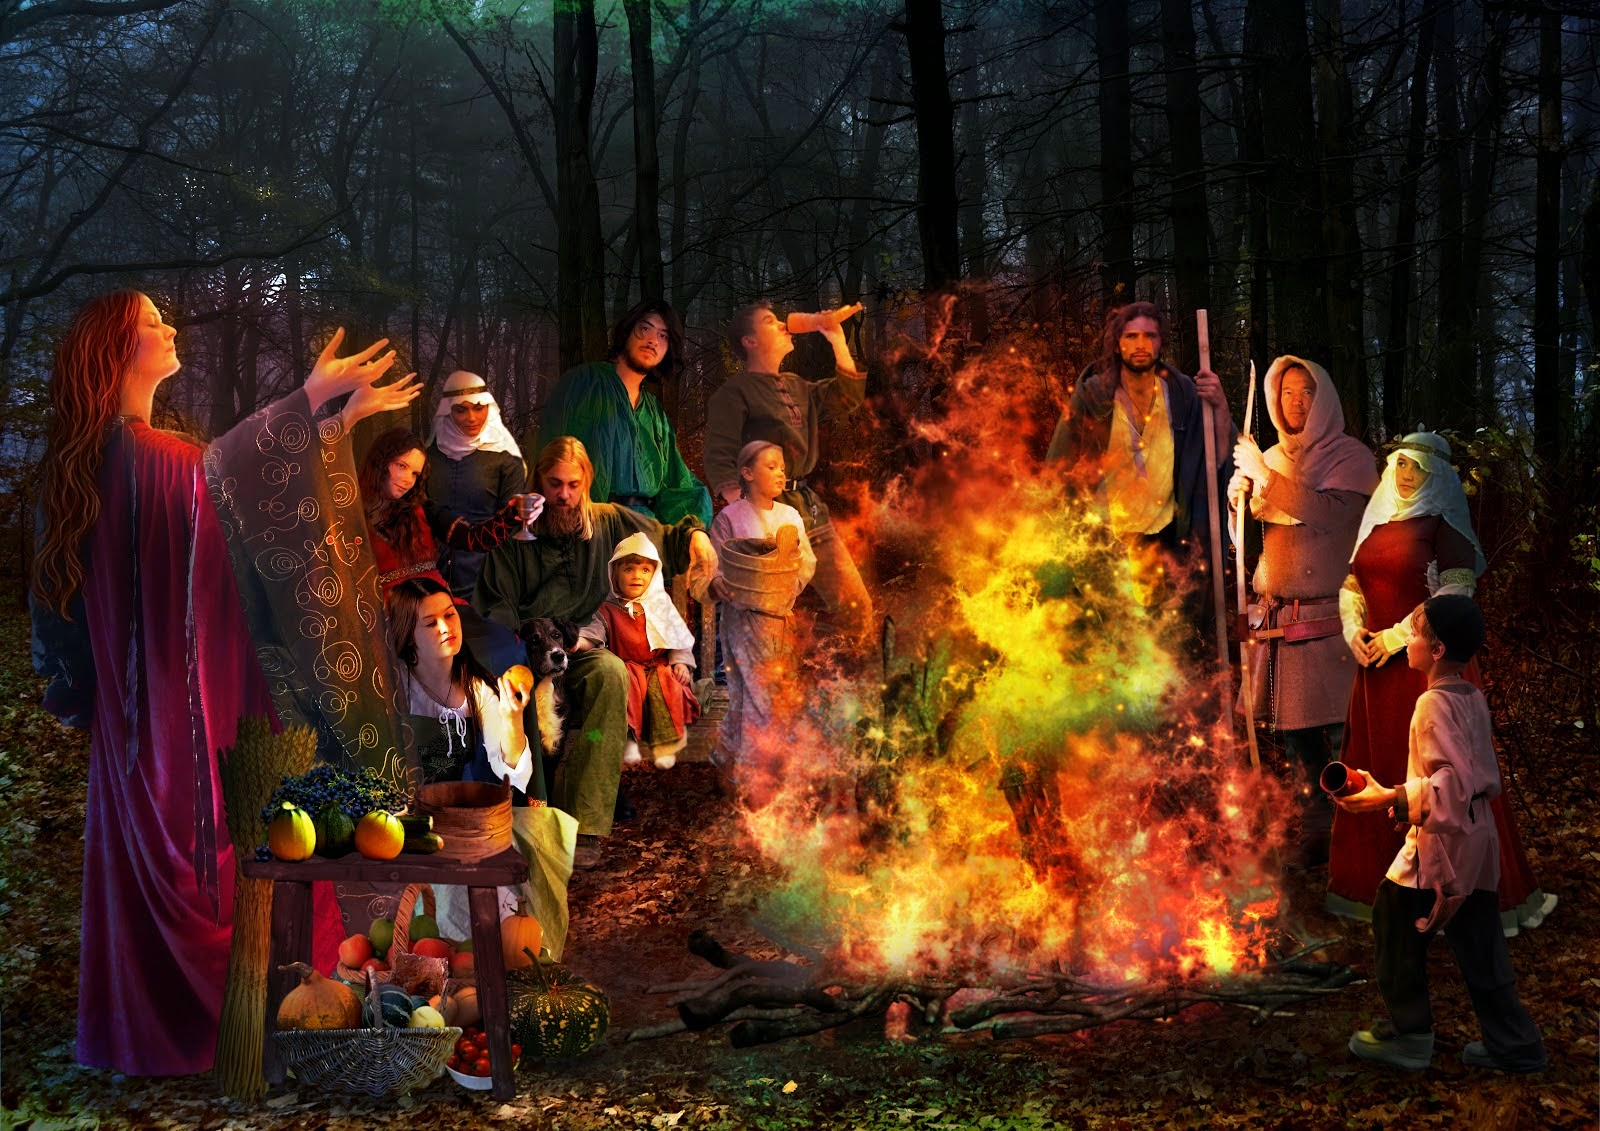 on the ancient celtic calendar the new year began november 1st and the samhain festival was like an ancient new years eve it was a festival to honor